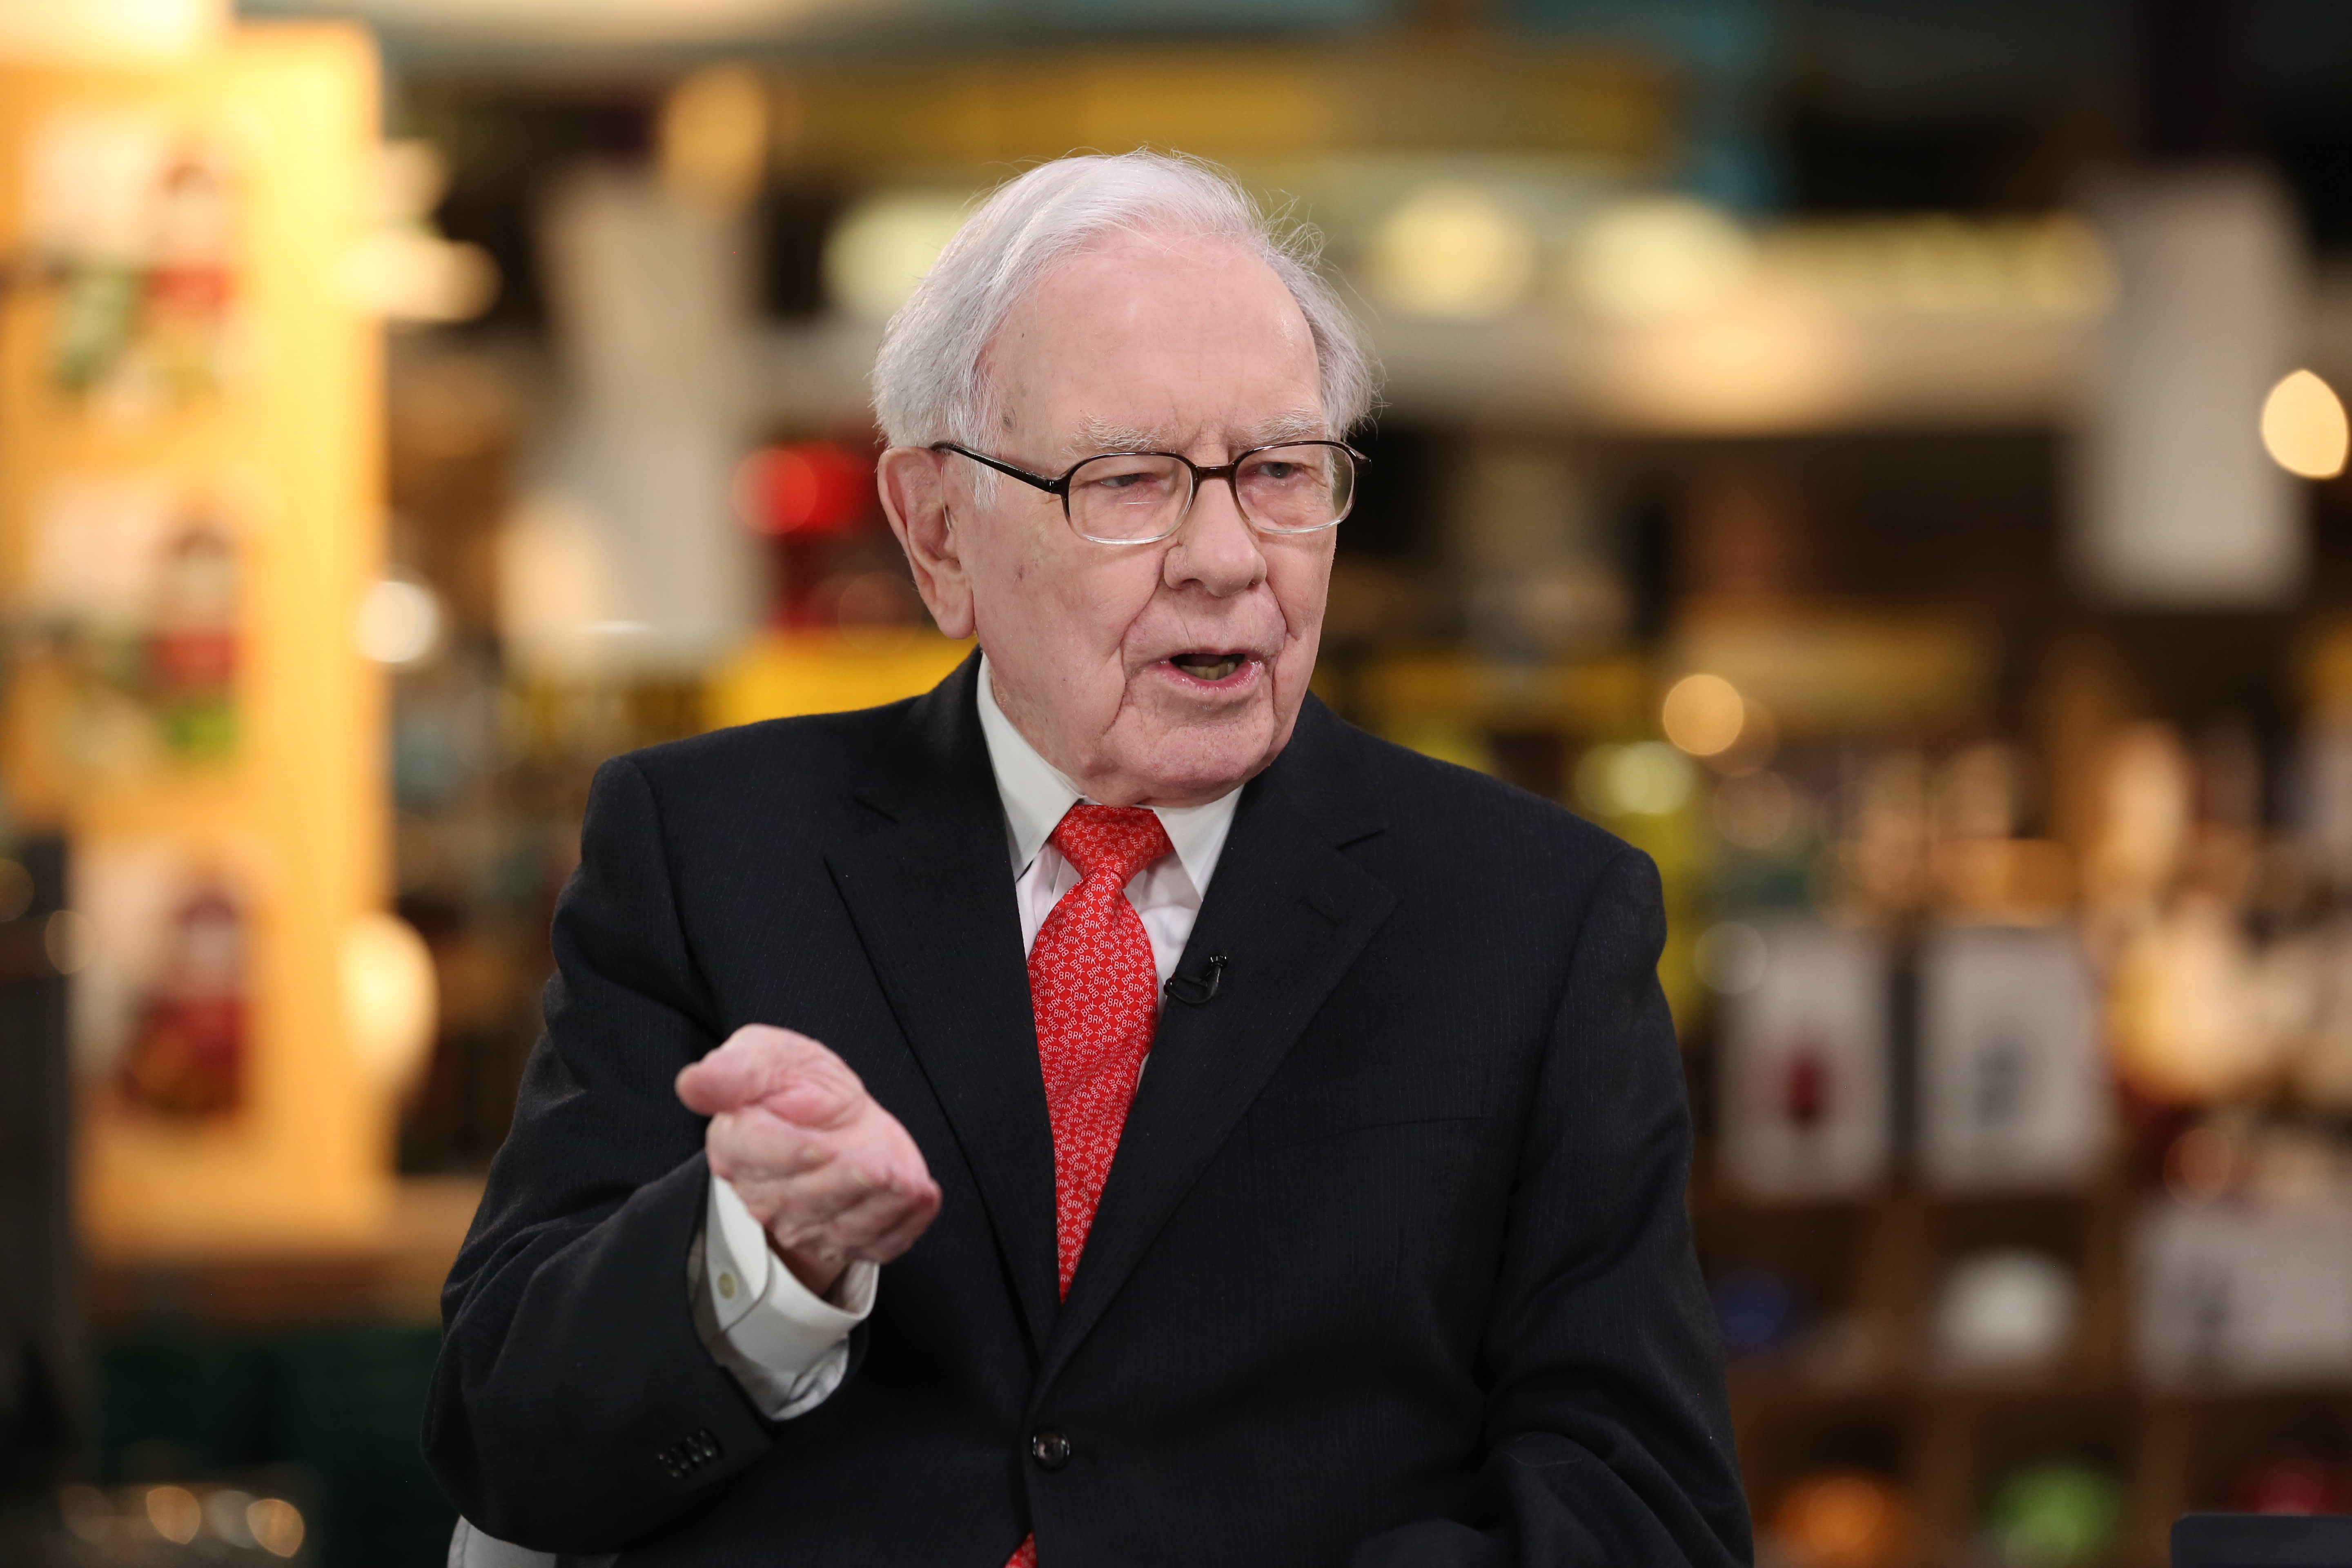 Warren Buffett wants 90 percent of his wealth to go to this one investment after he's gone